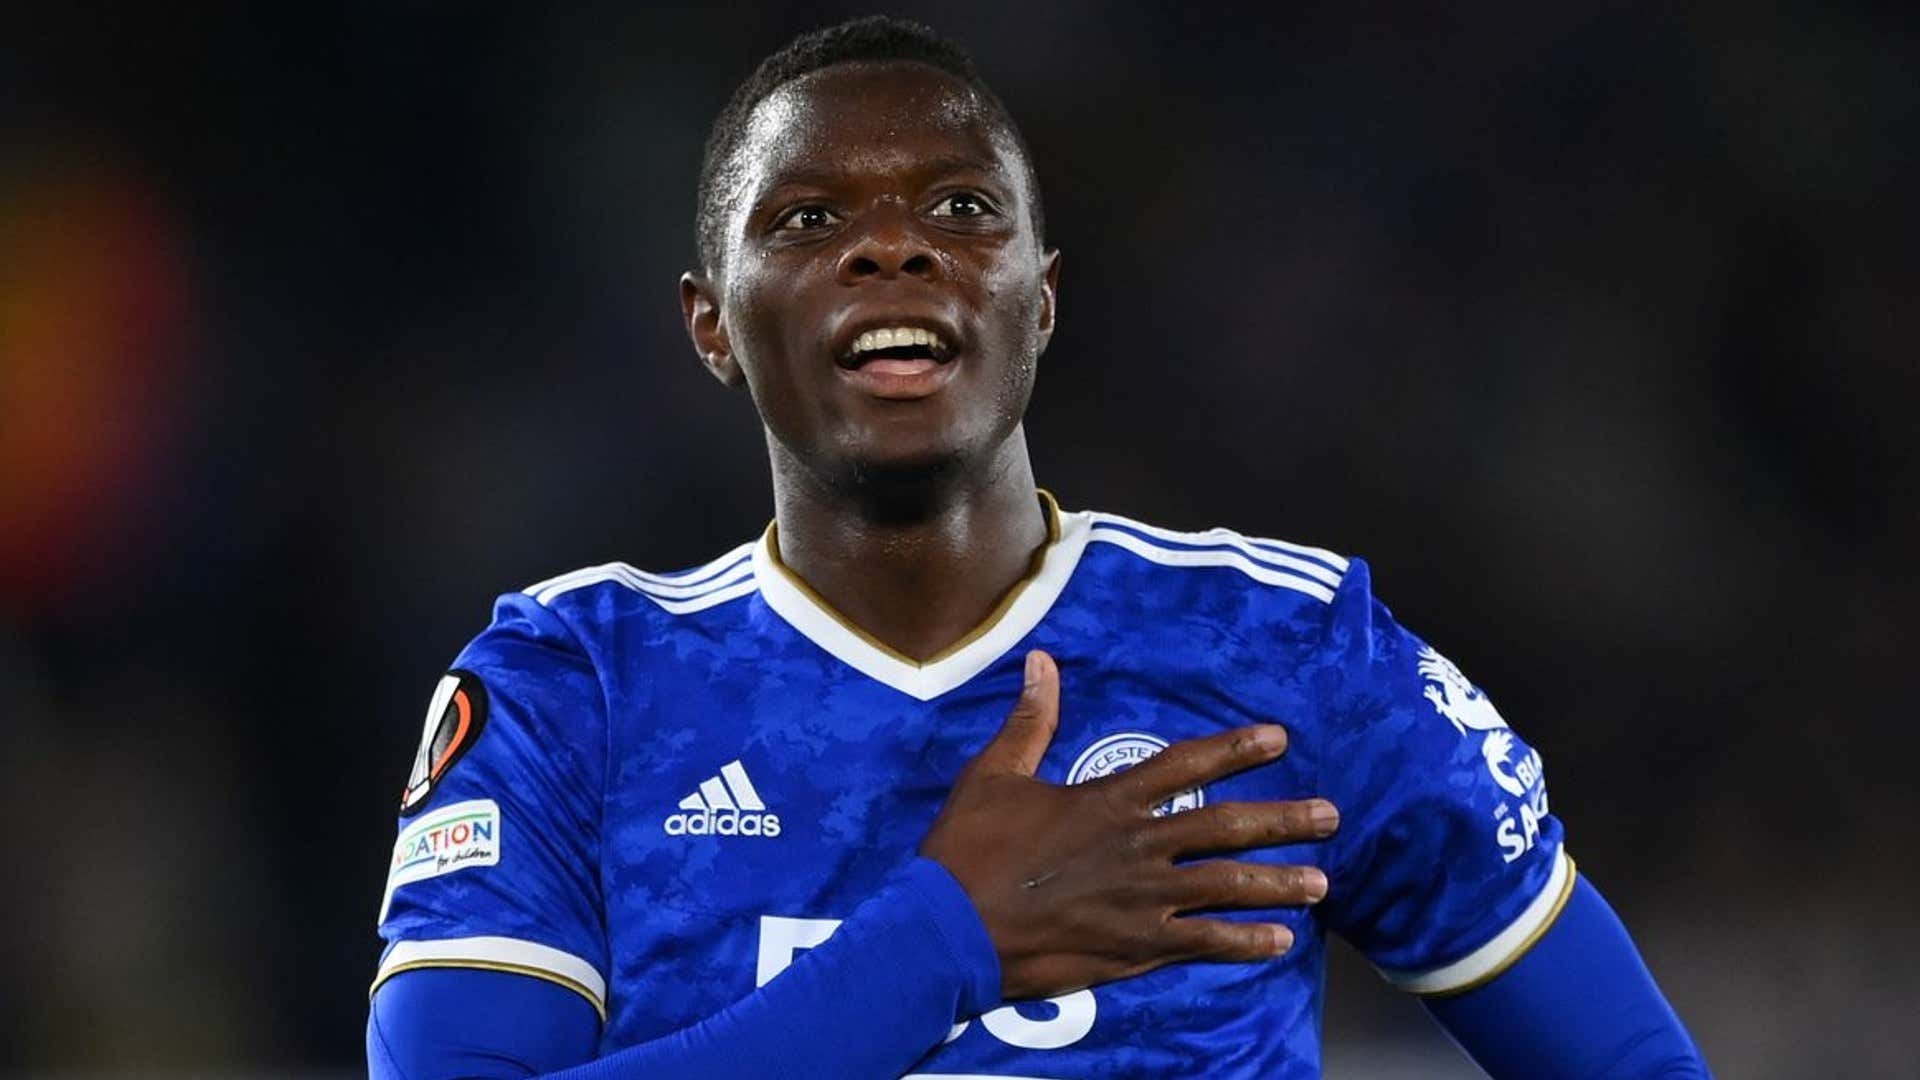 'It still feels like a dream' – Leicester City's Daka revels after maiden goal against Manchester United